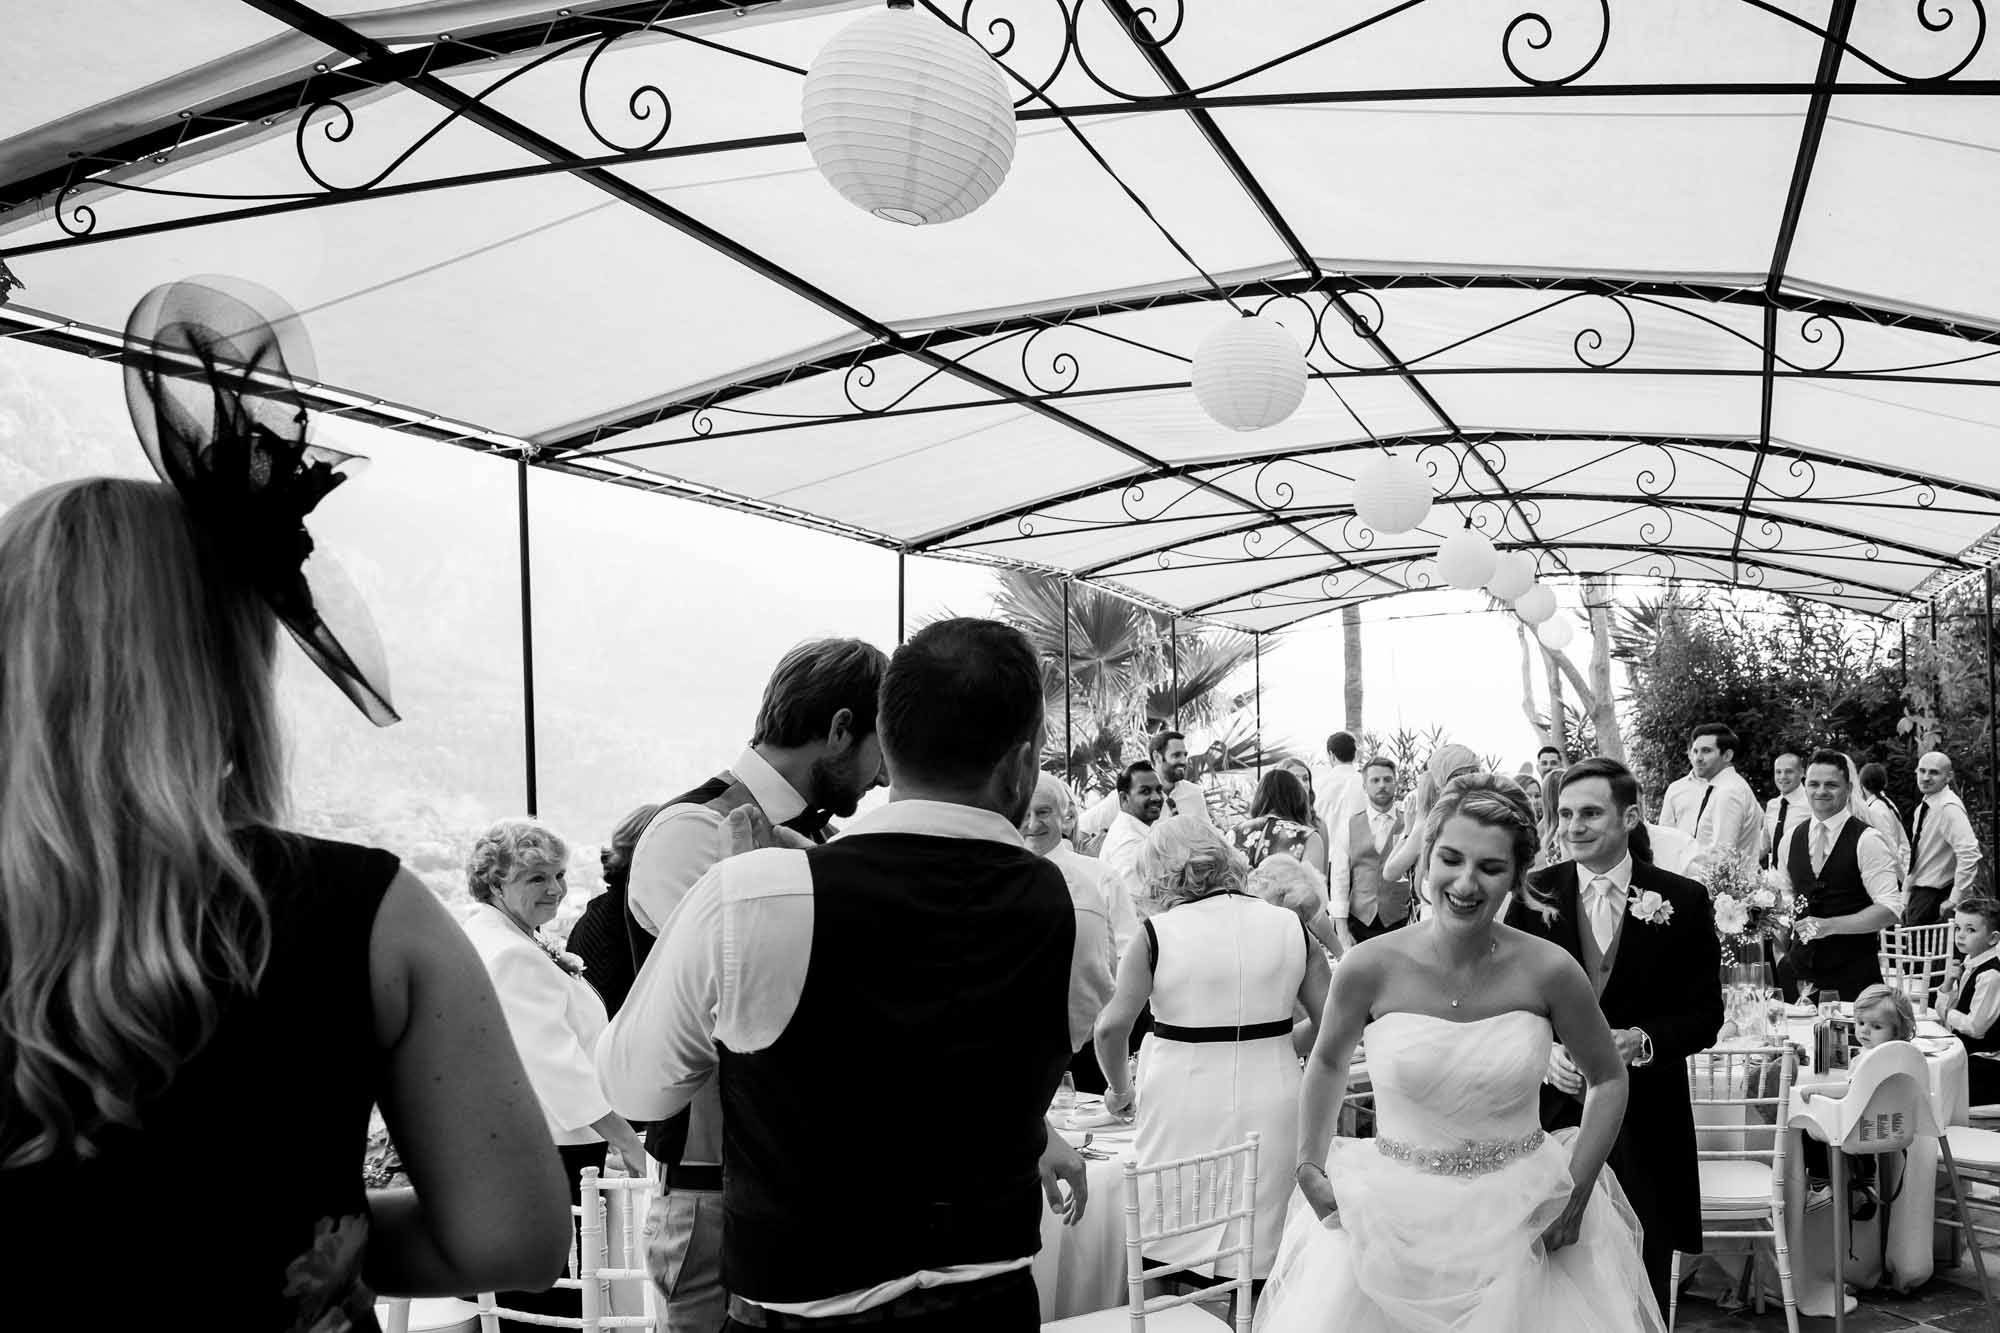 The bride and groom enter the terrace at the beautiful boutique hotel Can Vedera in Fornalutx, Mallorca